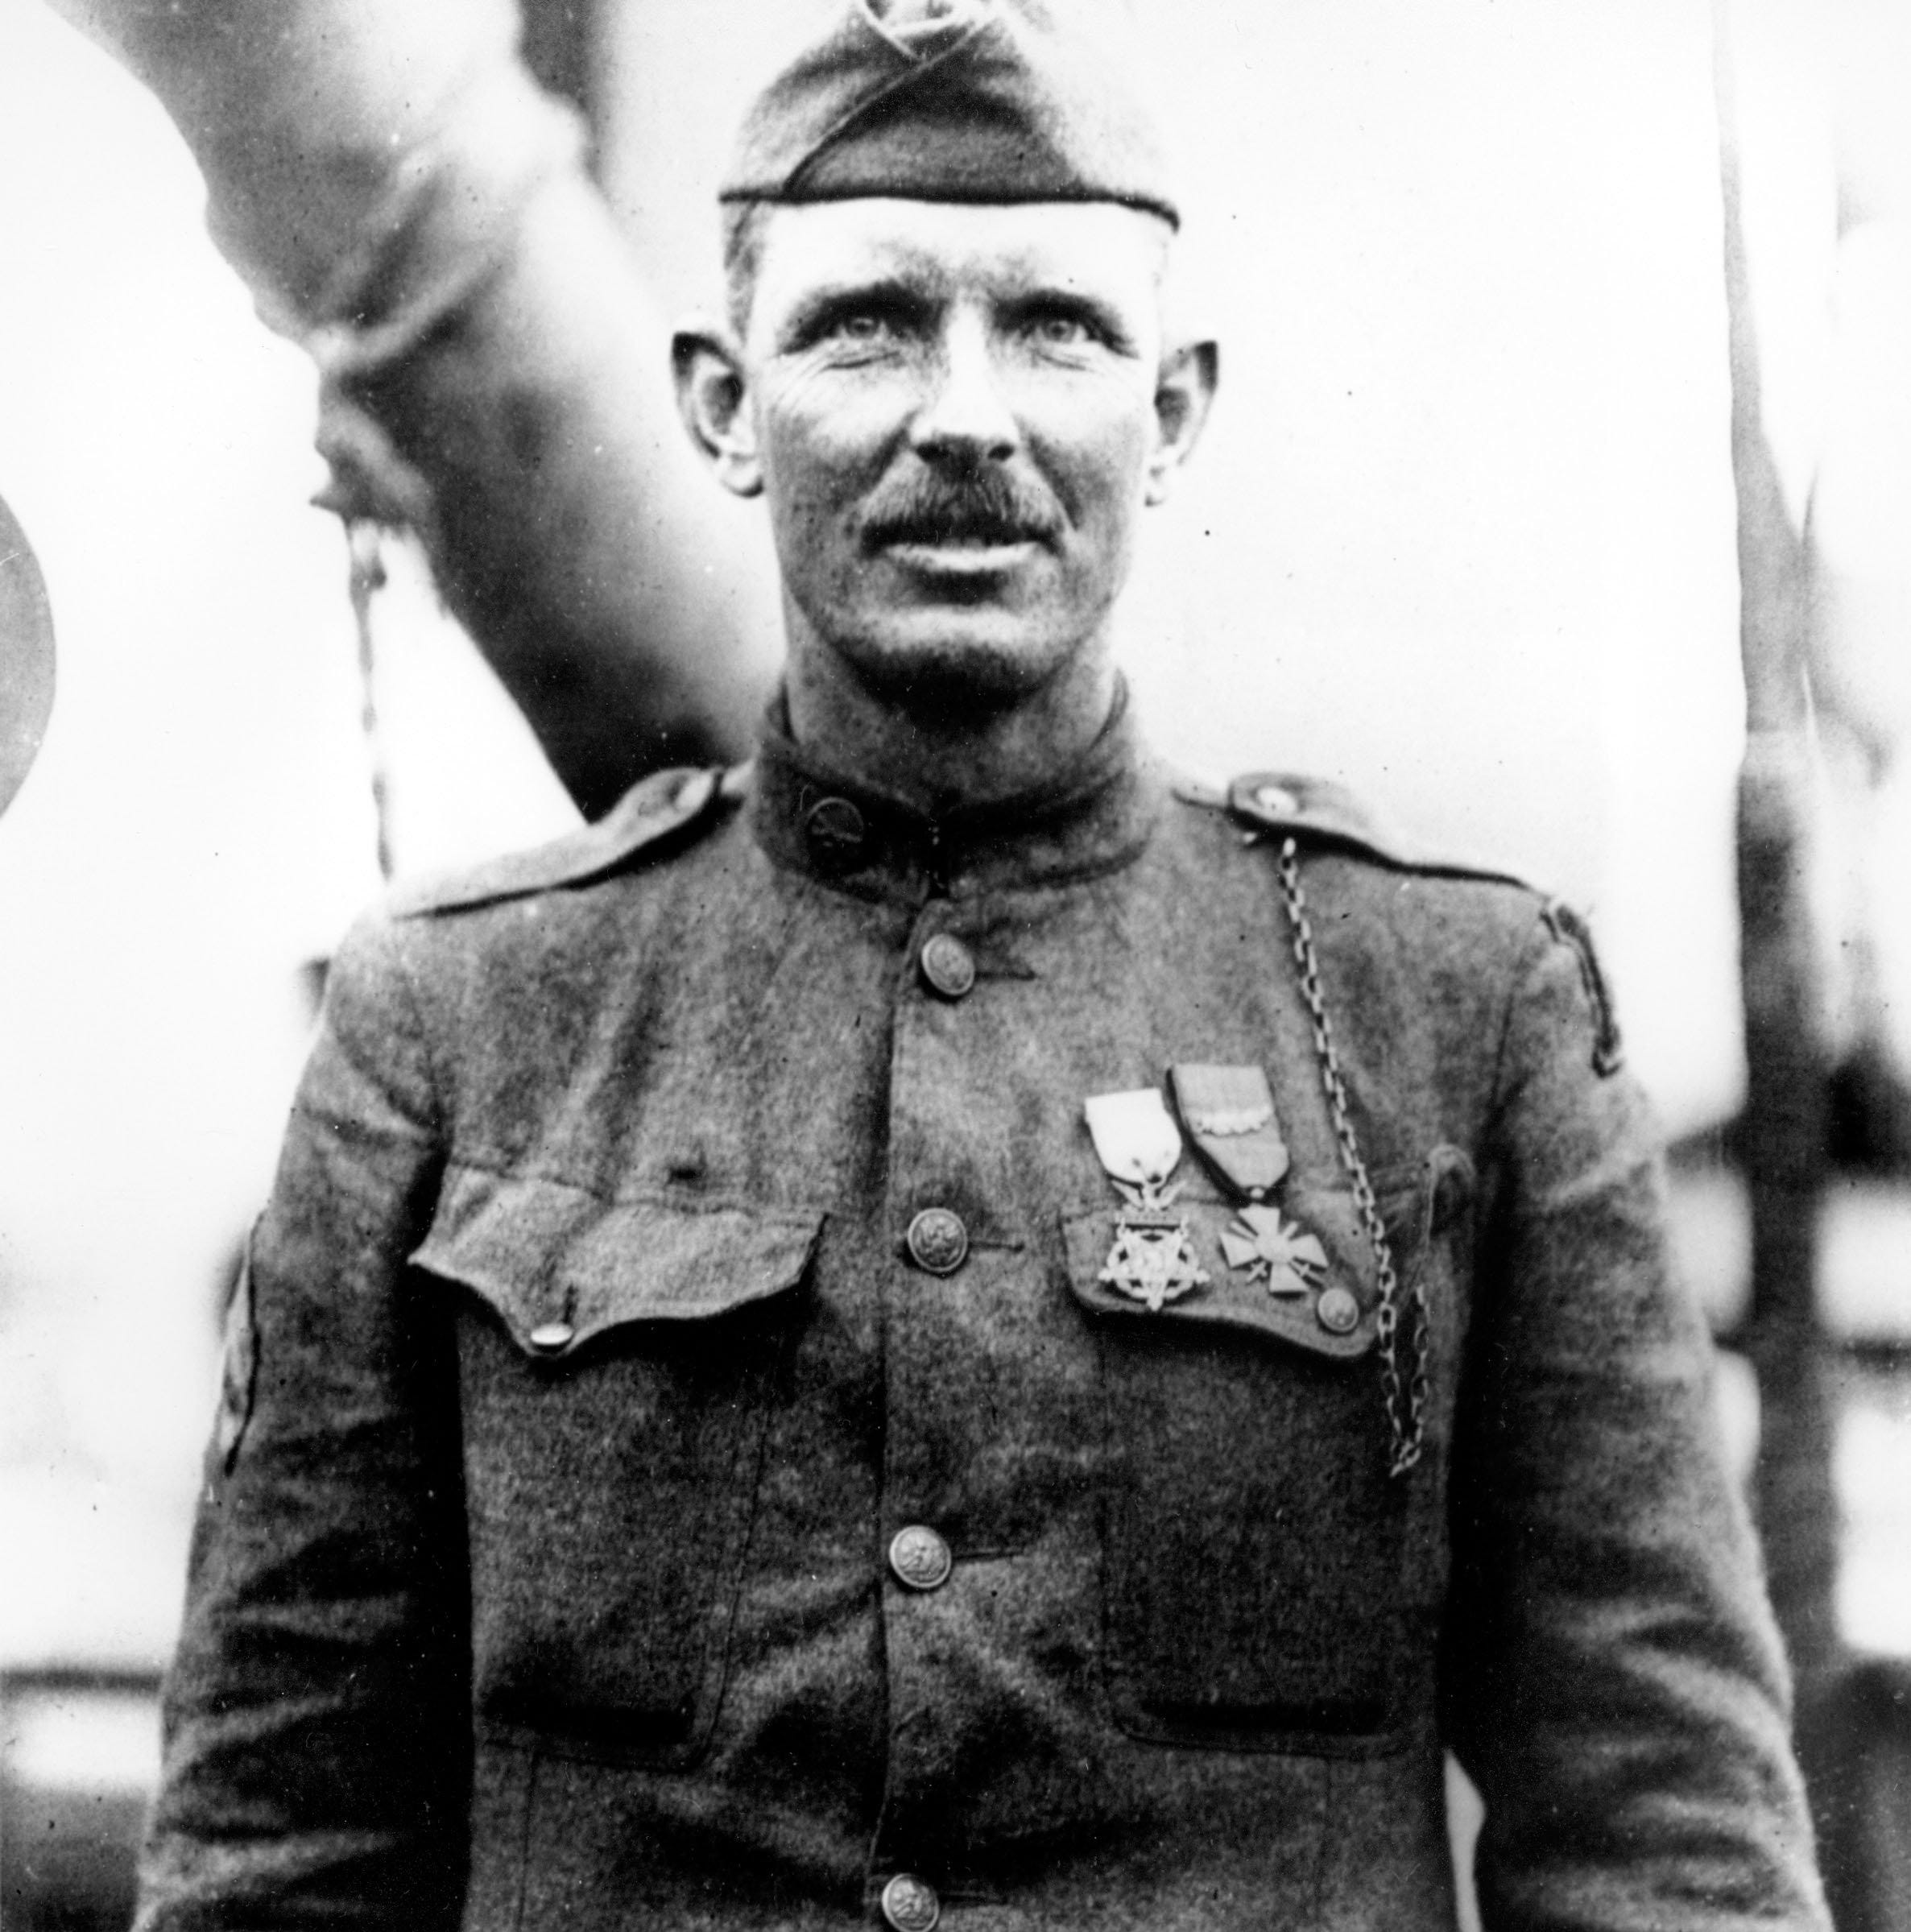 WW1: Tennessee's most famous soldier, Alvin C. York, didn't want to go to war